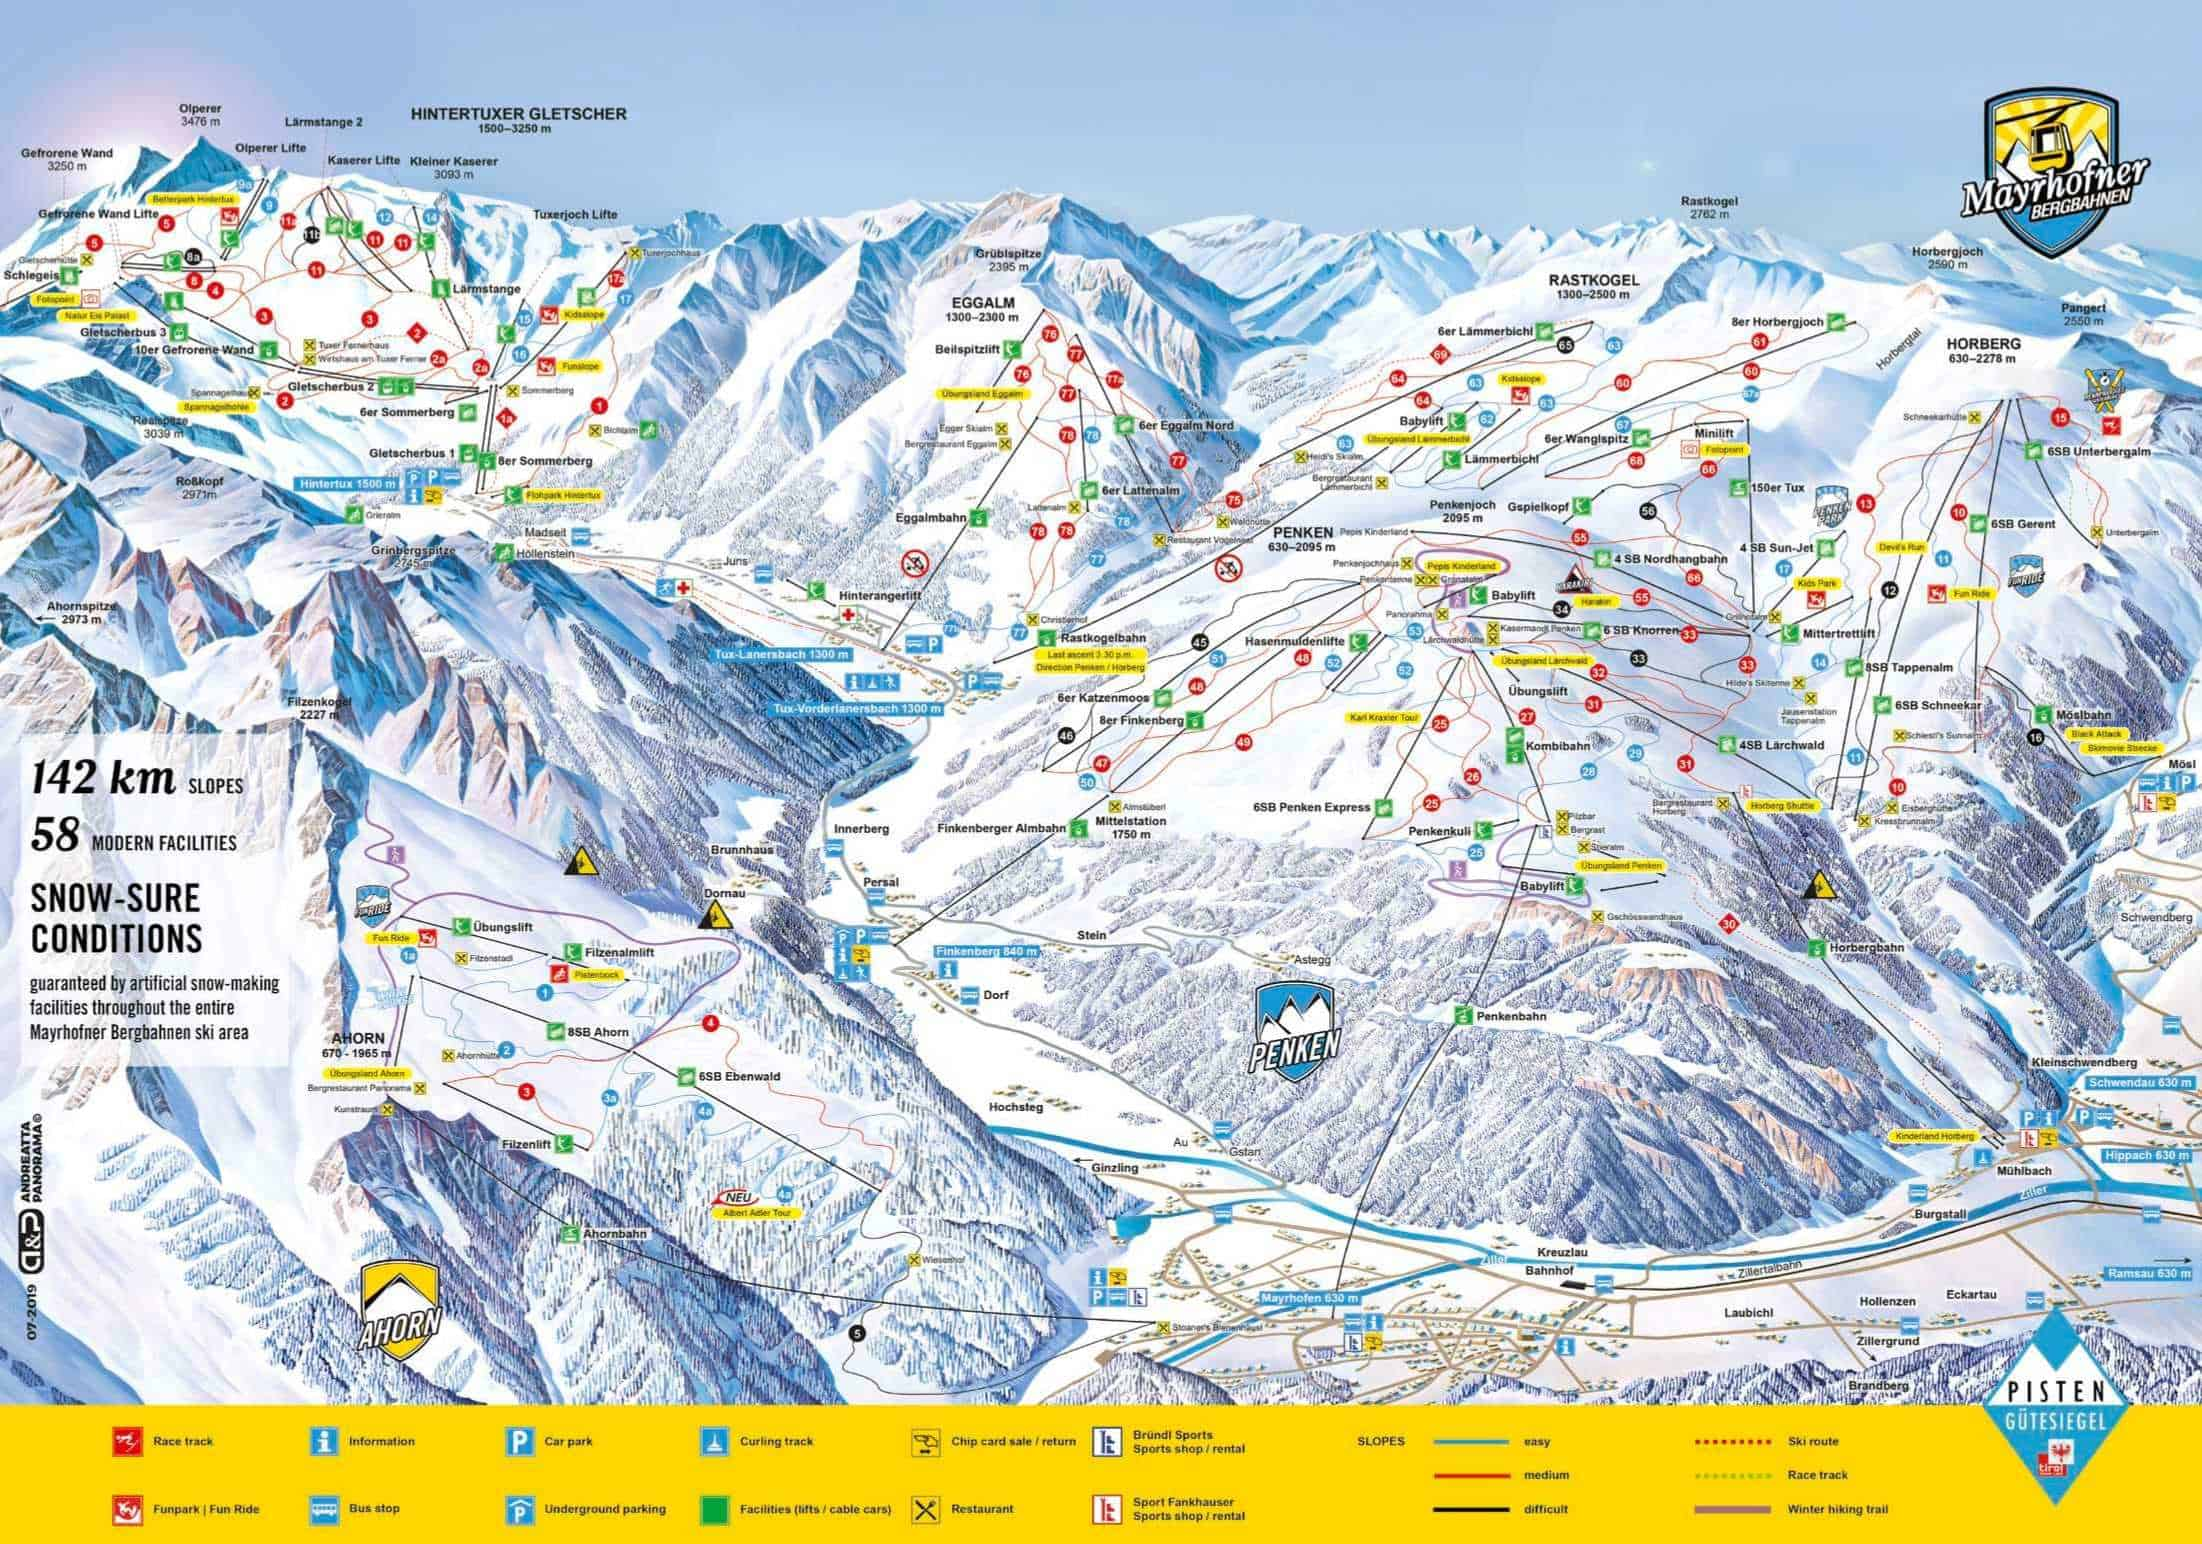 Mayrhofen JPG optimized